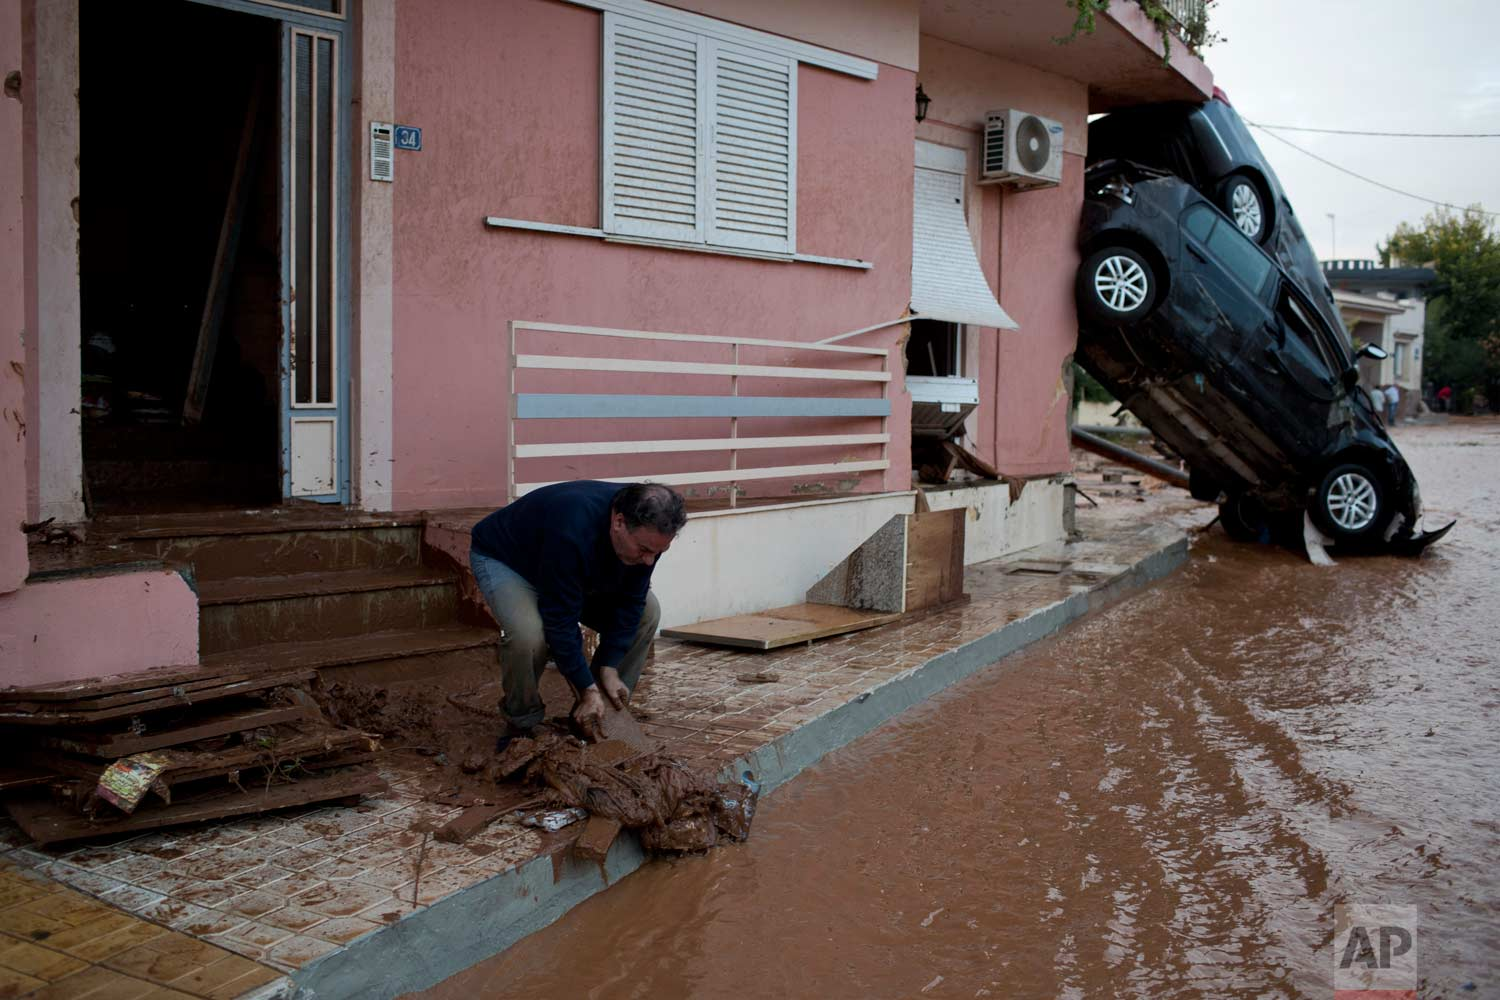 In this Wednesday, Nov. 15, 2017 photo, a man clears mad from his home in front of flipped over cars in the town of Mandra western Athens, following deadly flash floods that hit the area. Nearly 1,000 buildings were damaged, most of them private houses, as well as businesses, storage areas and public buildings.(AP Photo/Petros Giannakouris)